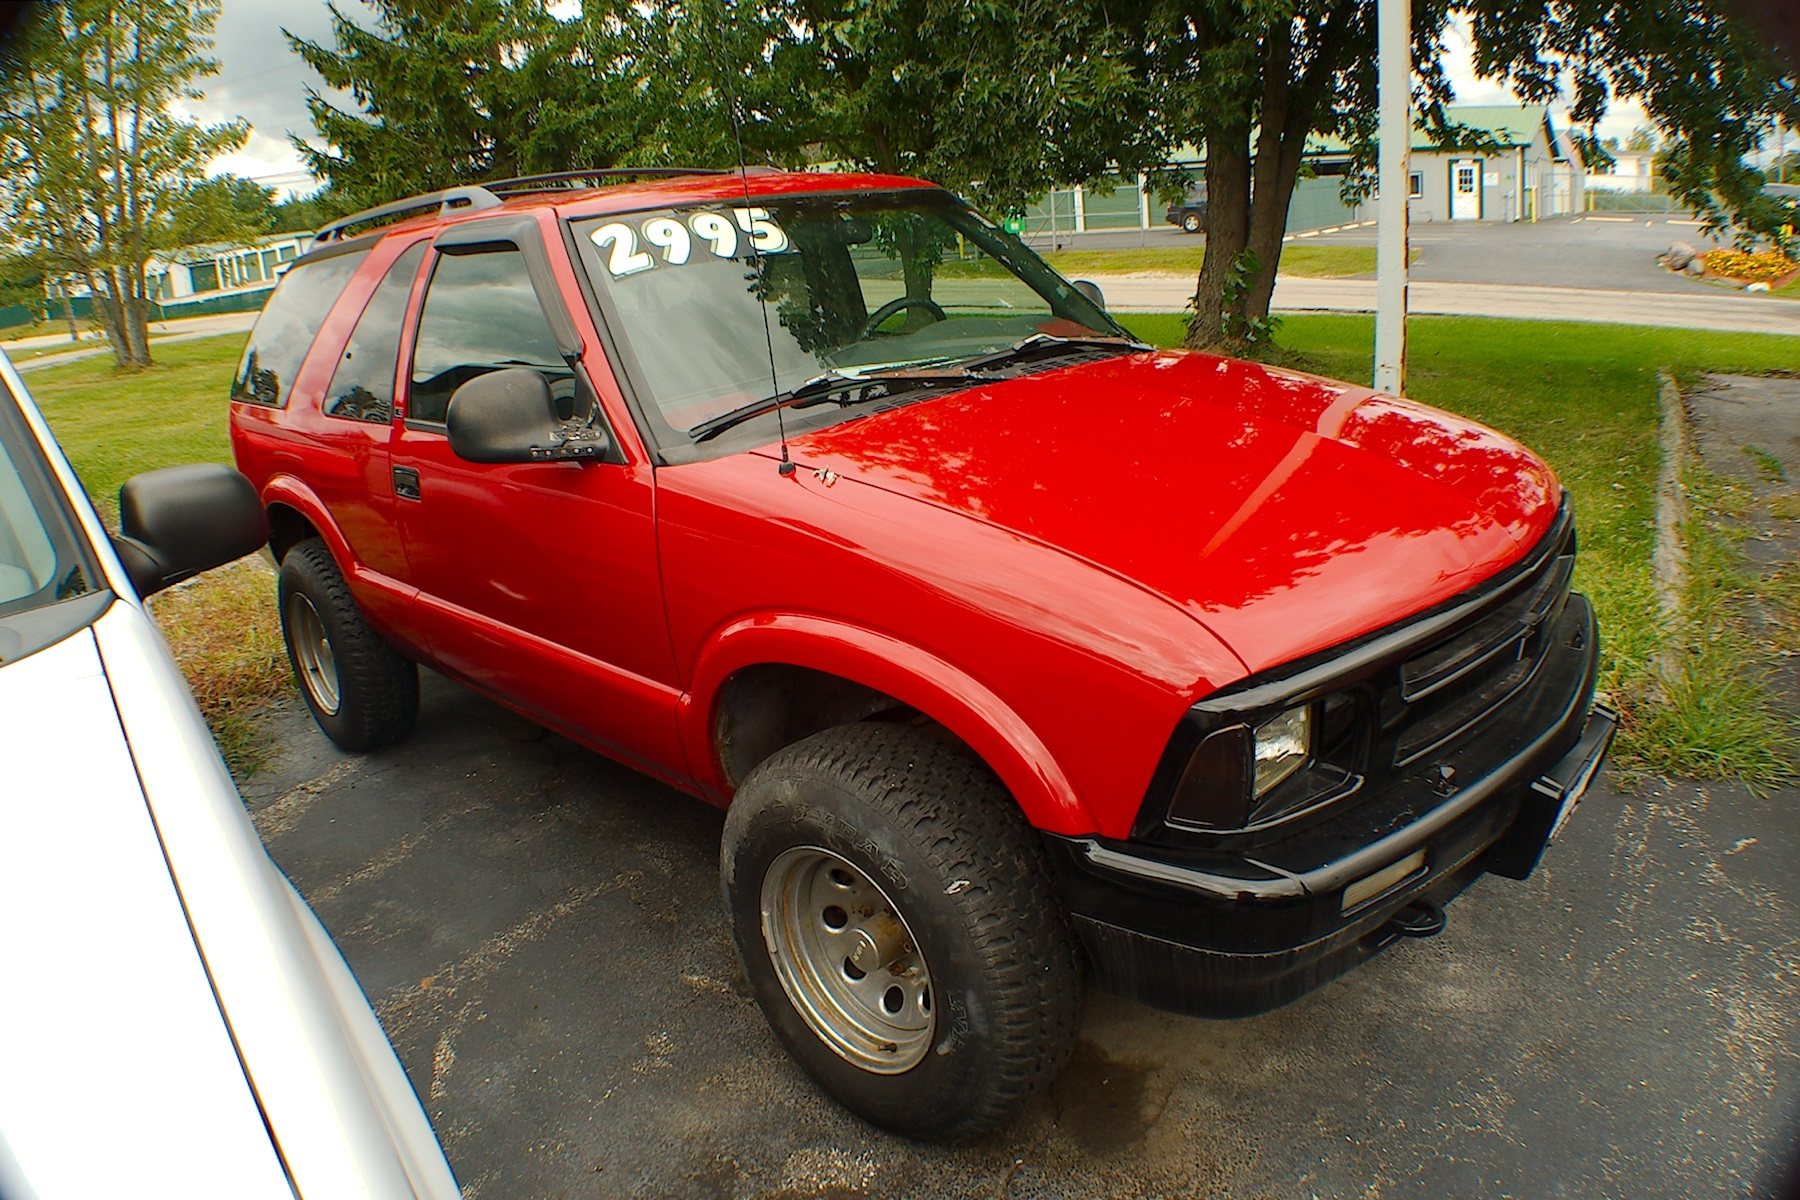 1996 Chevrolet Blazer LS 2Dr Red 4x4 SUV Sale Bannockburn Barrington Beach Park